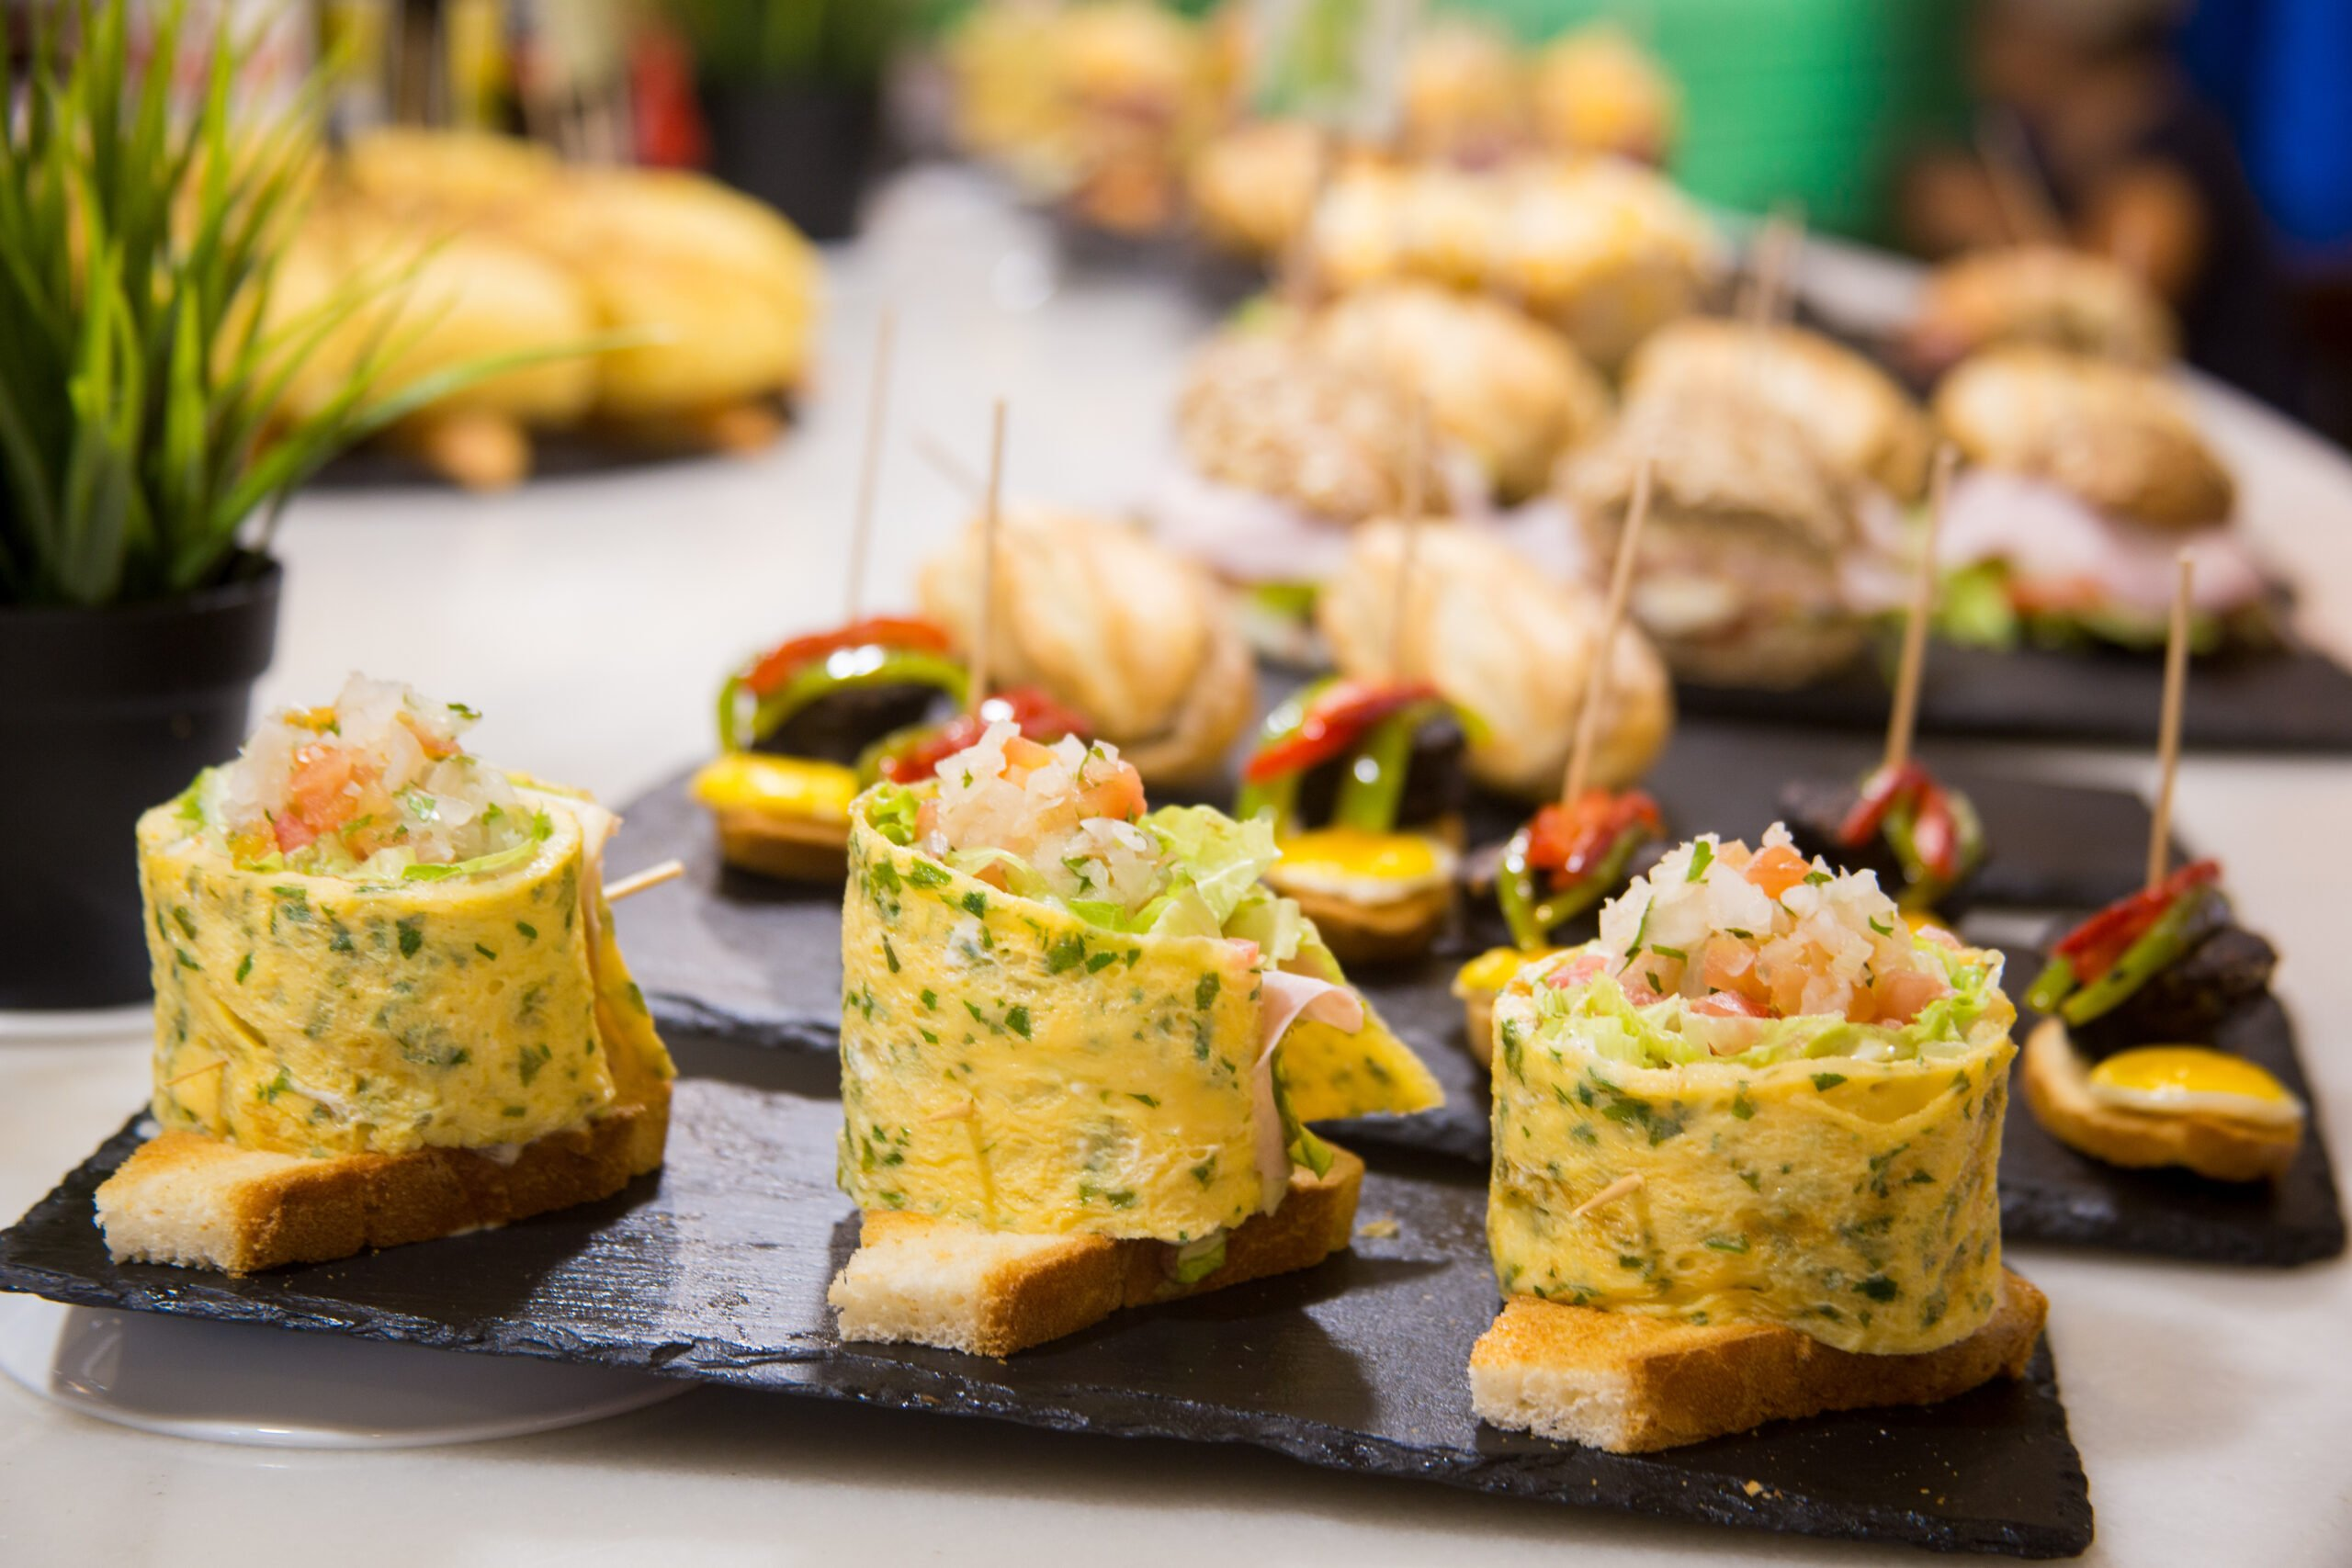 Experience The Taste Of Traditional Pintxos On The Bilbao Old City & Food Tasting Tour